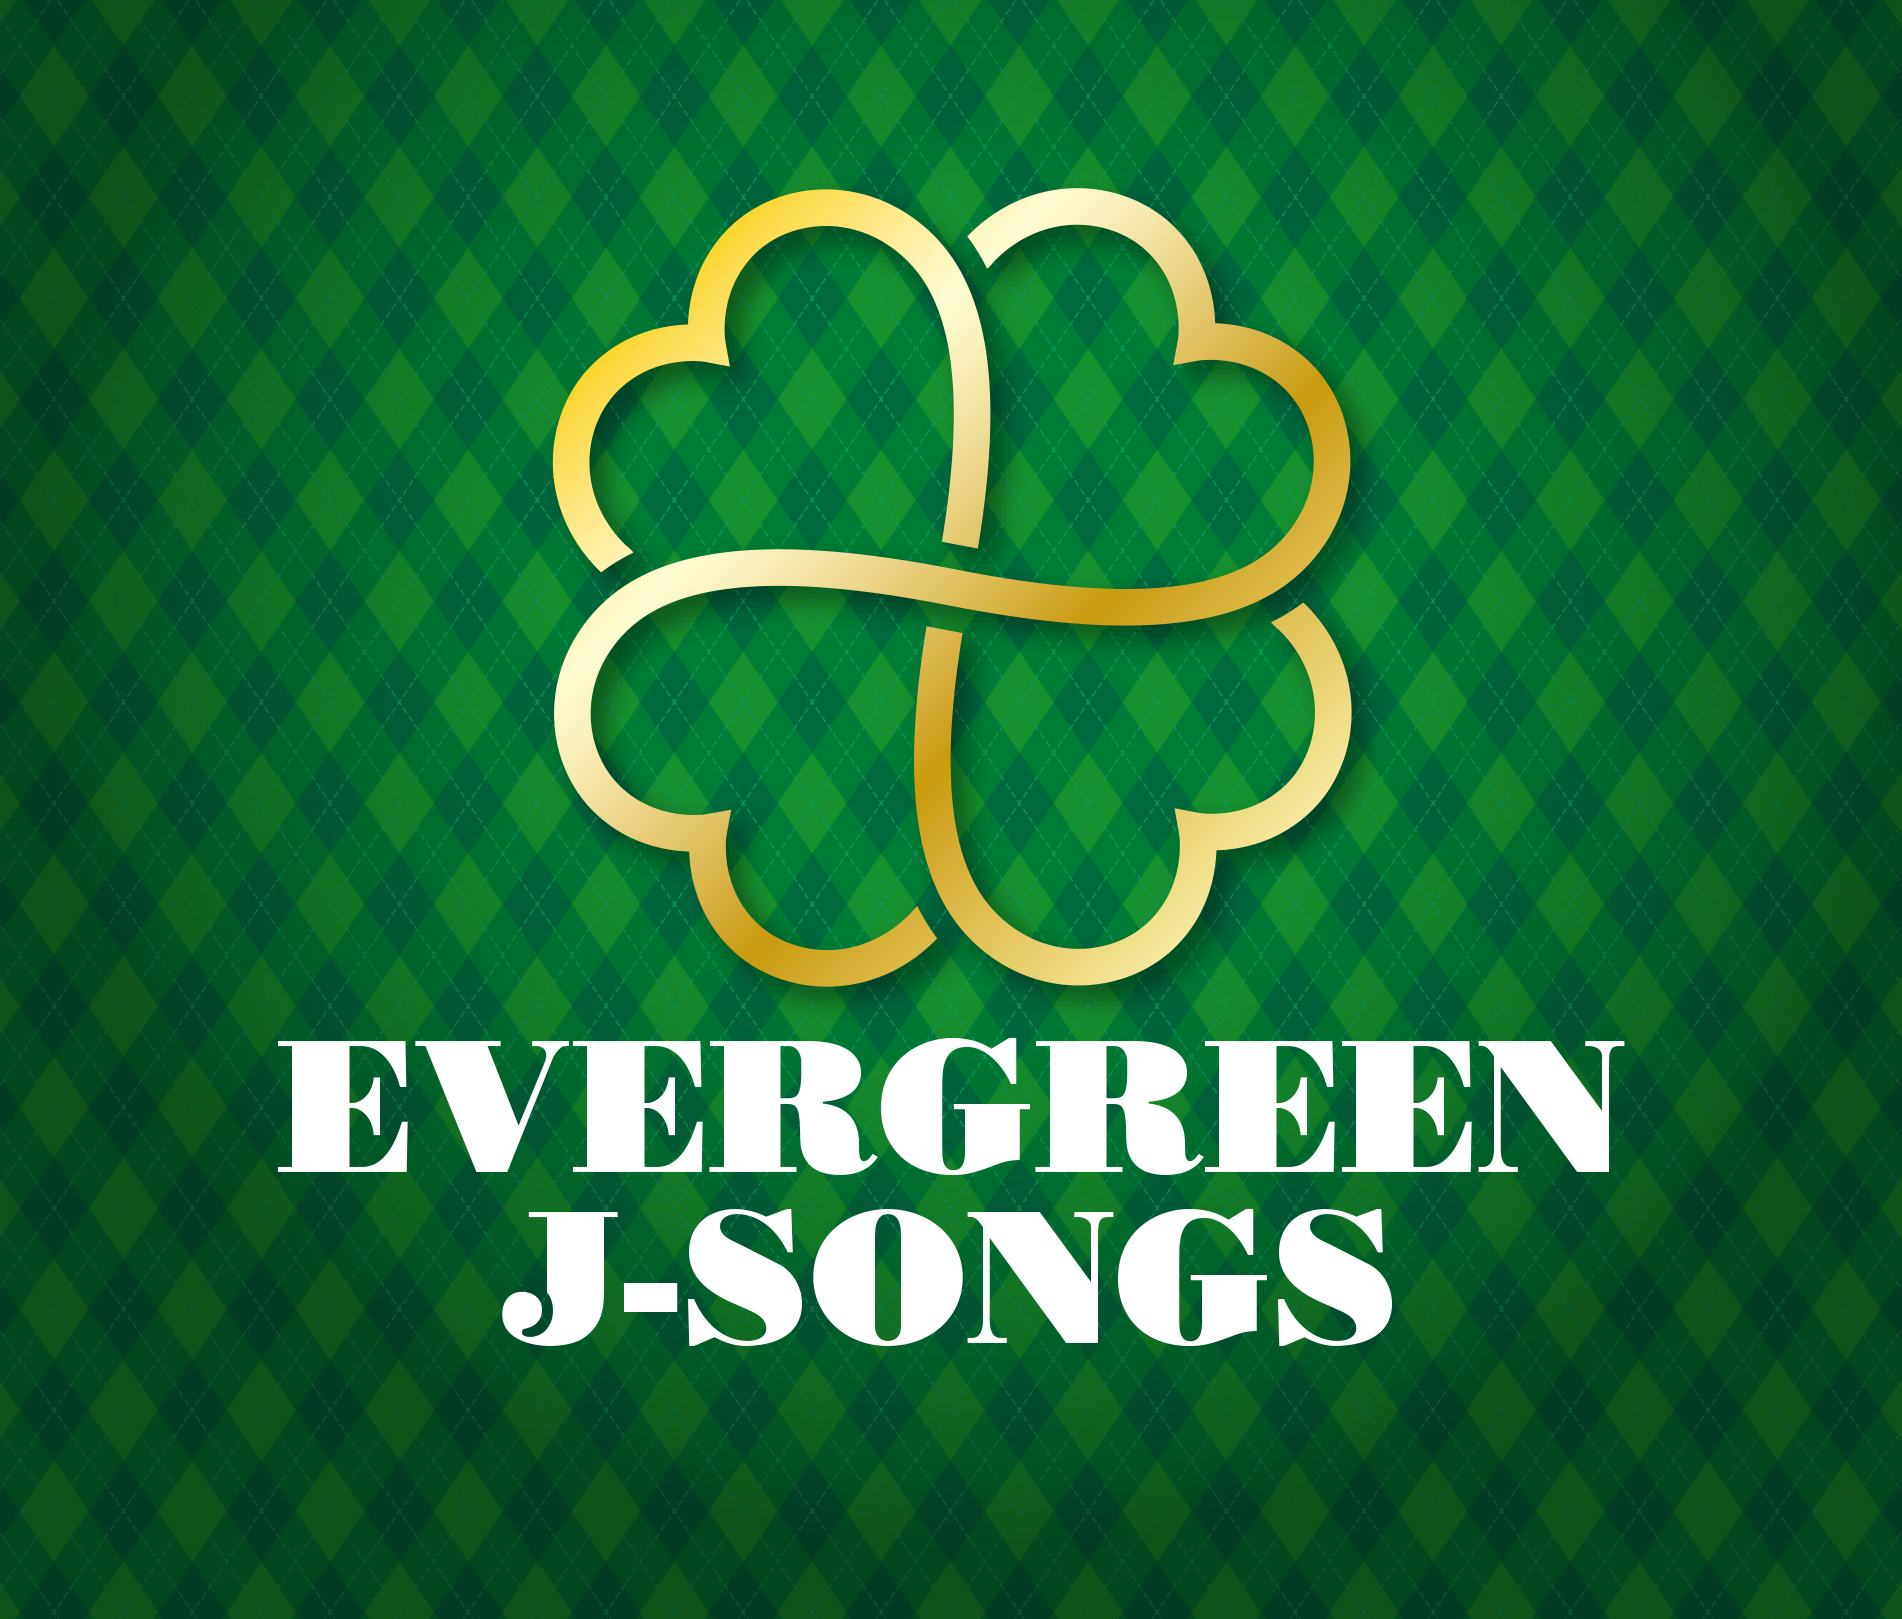 MHC7 4-6 EVERGREEN J-SONGS